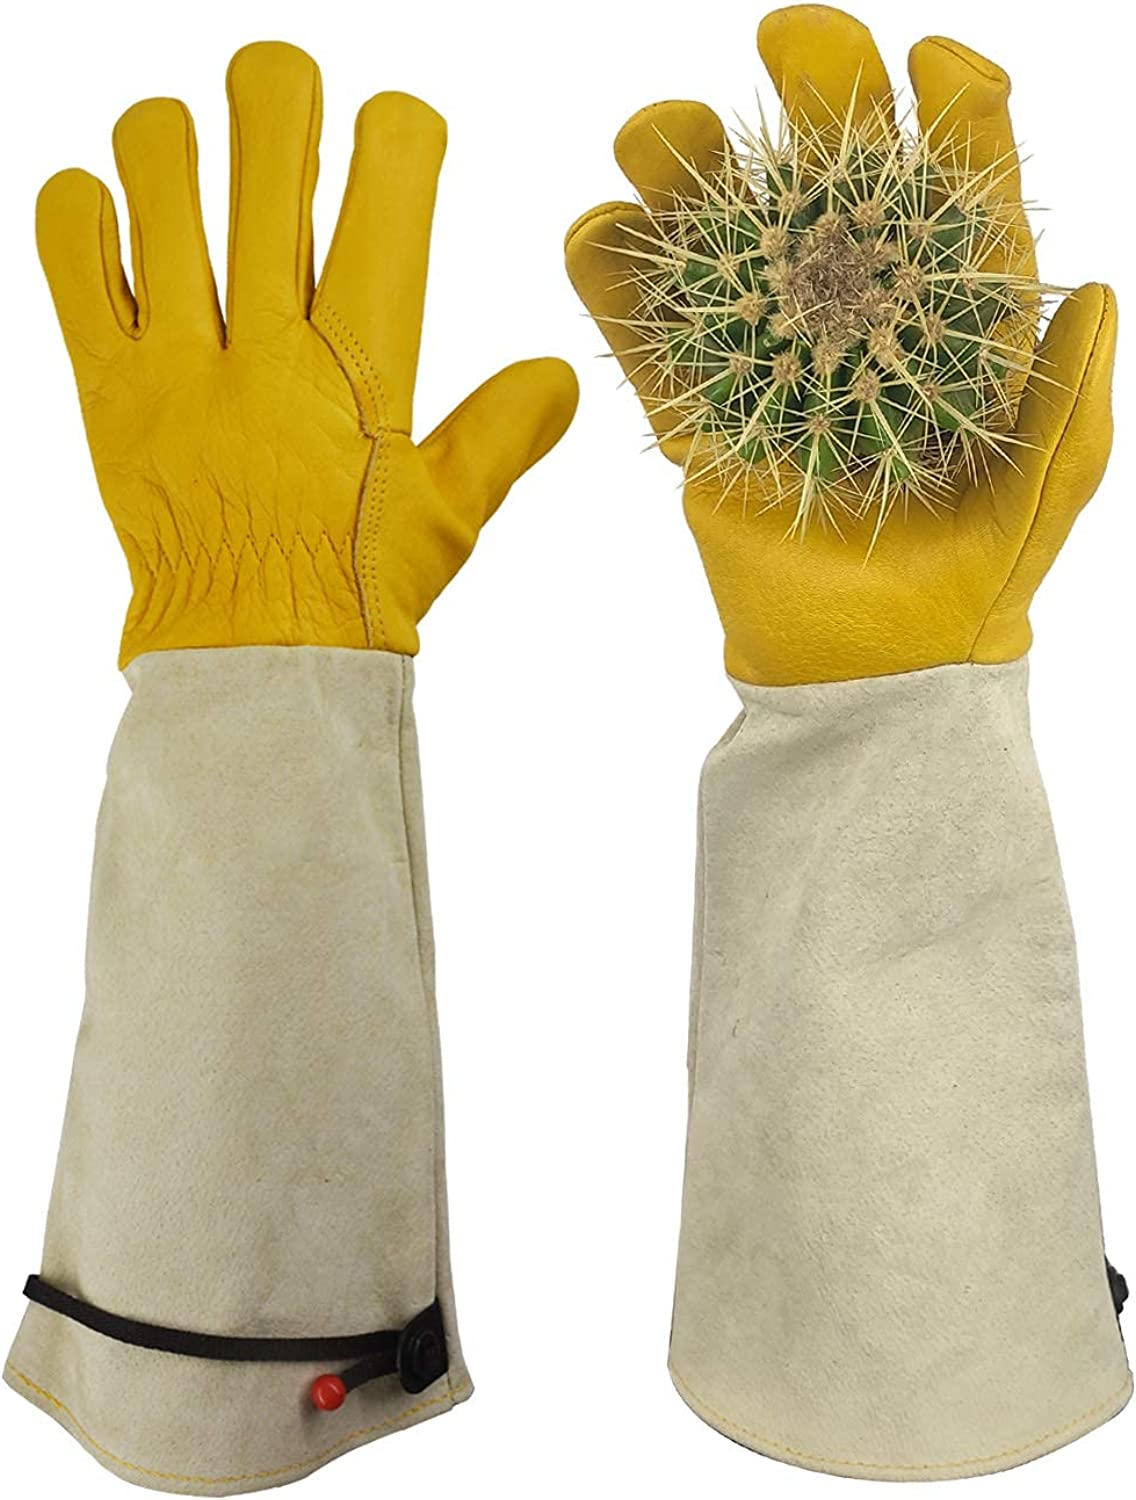 GLOSAV Cactus Gloves Thorn Proof for Gardening 67% OFF of Ranking TOP8 fixed price Rose Prun